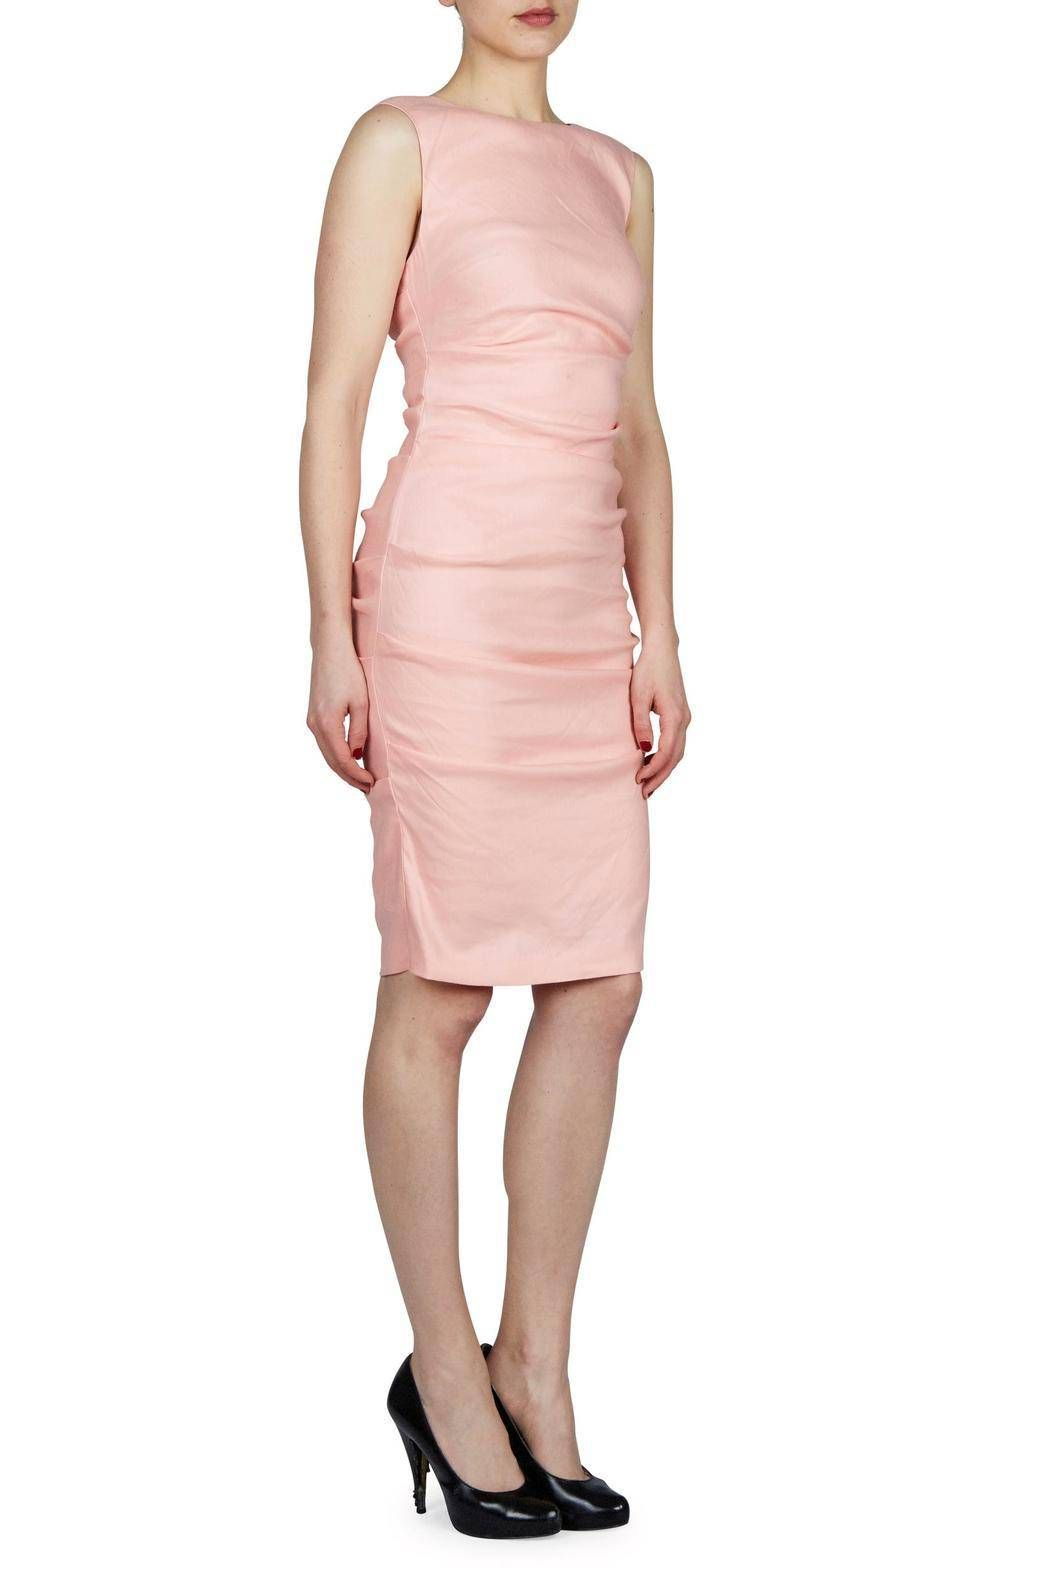 Nicole Miller Lauren Stretch Dress